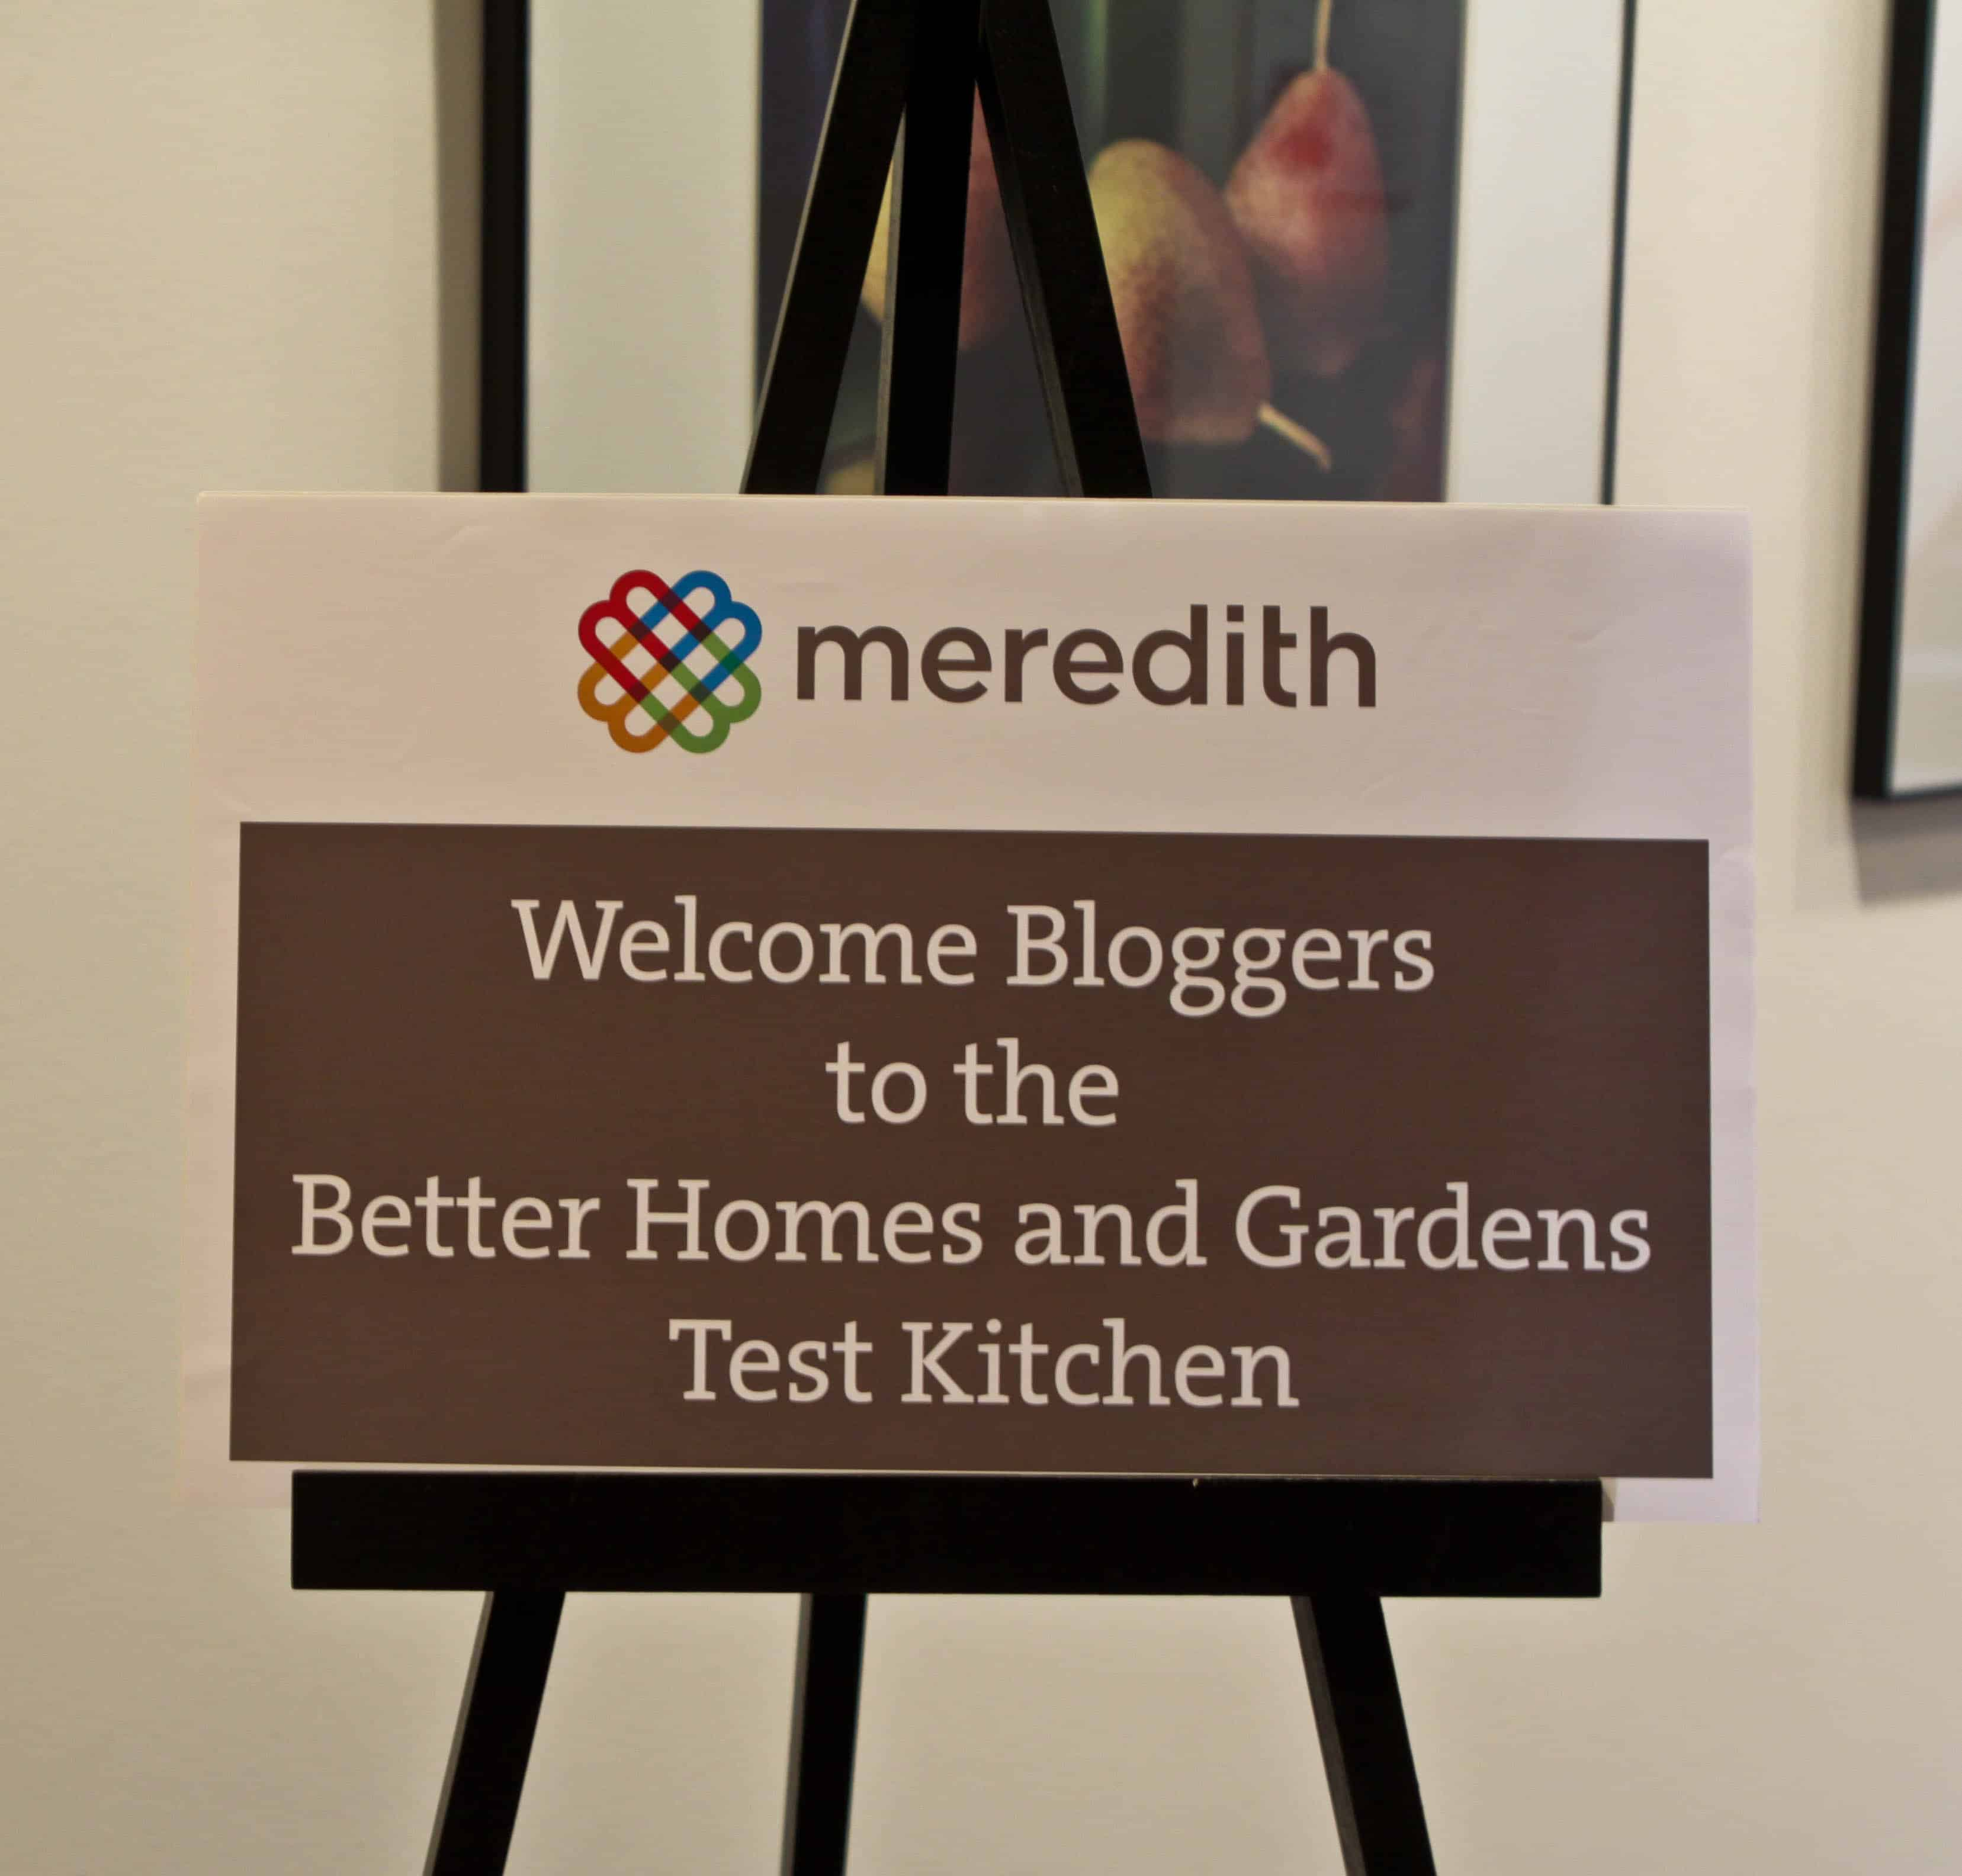 The Welcome Sign at One of Better Homes and Gardens' Test Kitchens